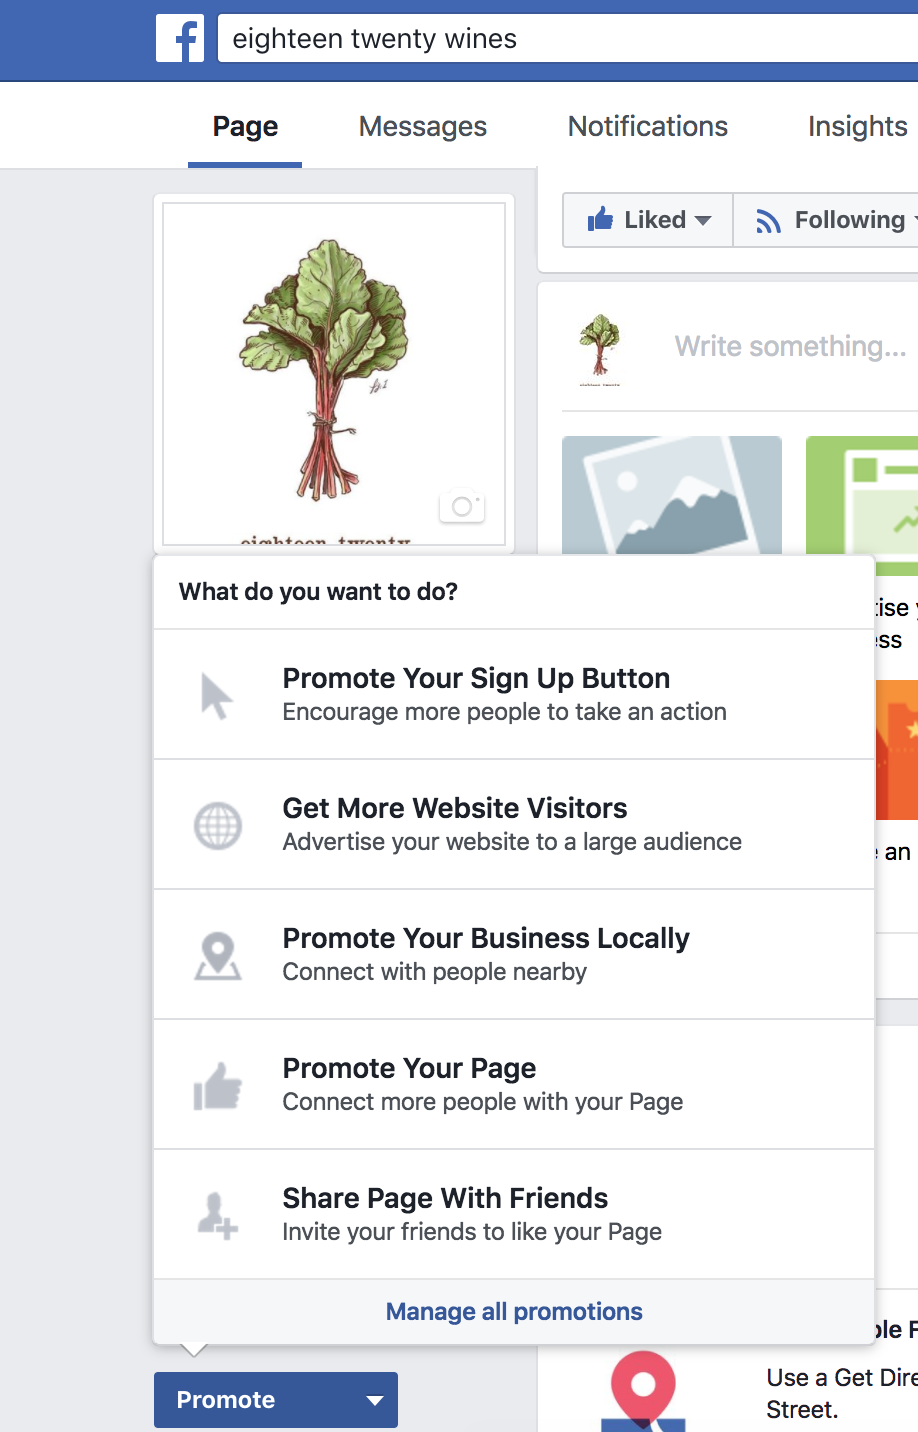 how do i set up facebook ad manager accounts for clients go to promotions and at the bottom of the recent promotions there is a link to go to ads manager that should bring you to a screen you ad account